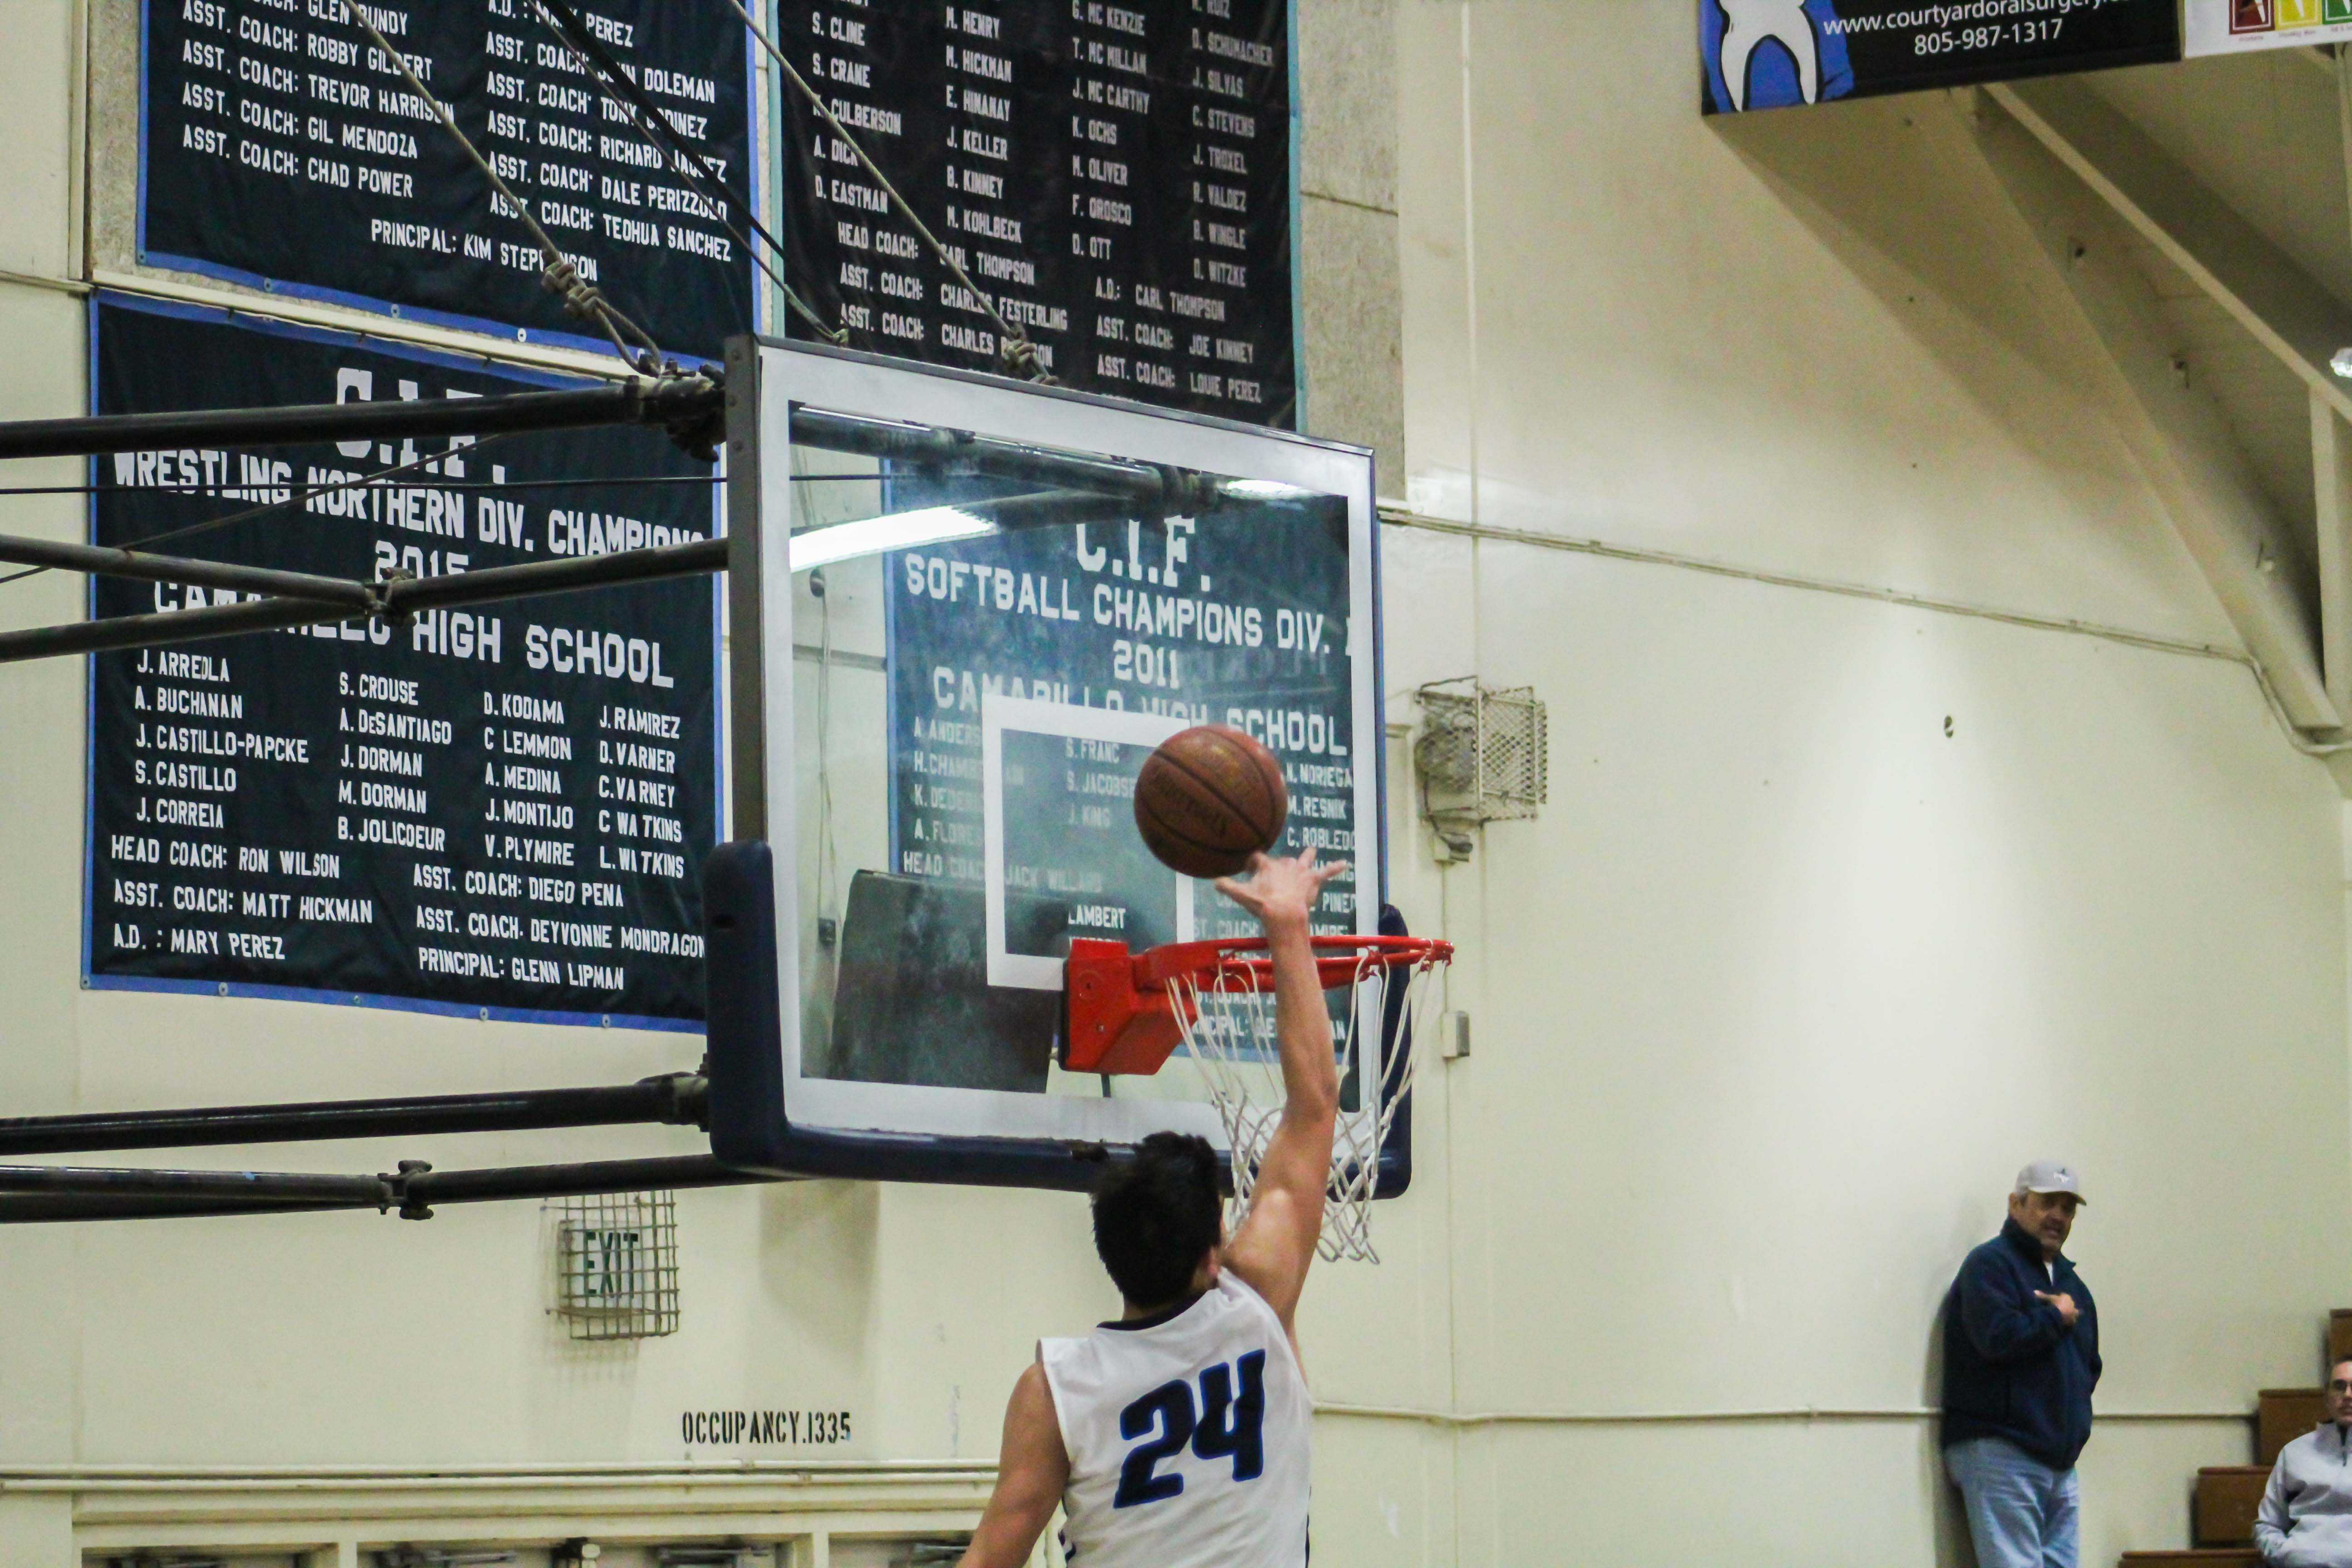 Jaime Jaquez, sophomore, attempts a dunk with an impressed on-looker.